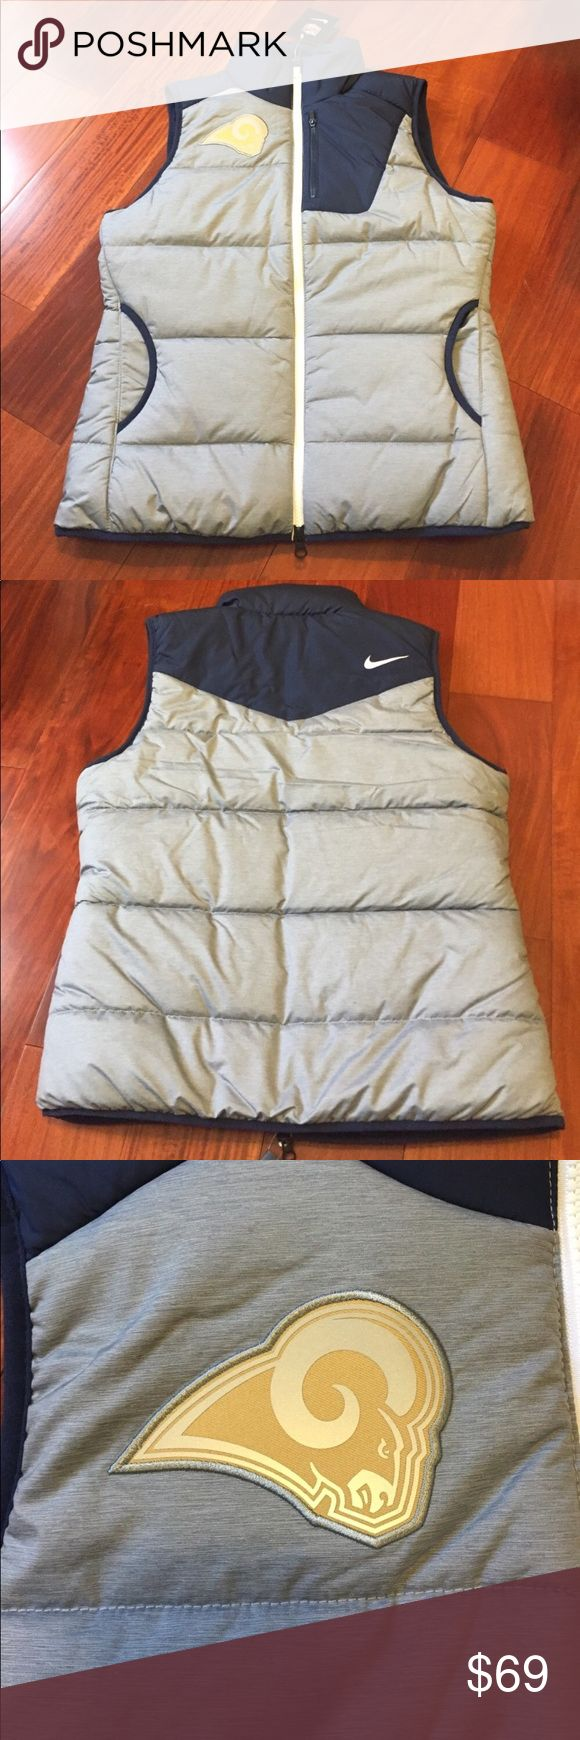 💥 NIKE WOMENS LOS ANGELES RAMS NFL PUFFER VEST Brand new with tag attached Nike Championship Drive Team Apparel (NFL Rams) Women's Winter Vest. Size: S   BENEFITS:  Insulated, quilted design helps keep you warm Mock neck zips up to your chin for custom coverage Sleeveless profile allows natural movement Side pockets and chest zip media pocket PRODUCT DETAILS: Size: S Fabric: Body / Pocket: 100% polyester. Lining: 100% nylon Fill: 100% polyester Machine wash Made in Indonesia Nike Jackets…